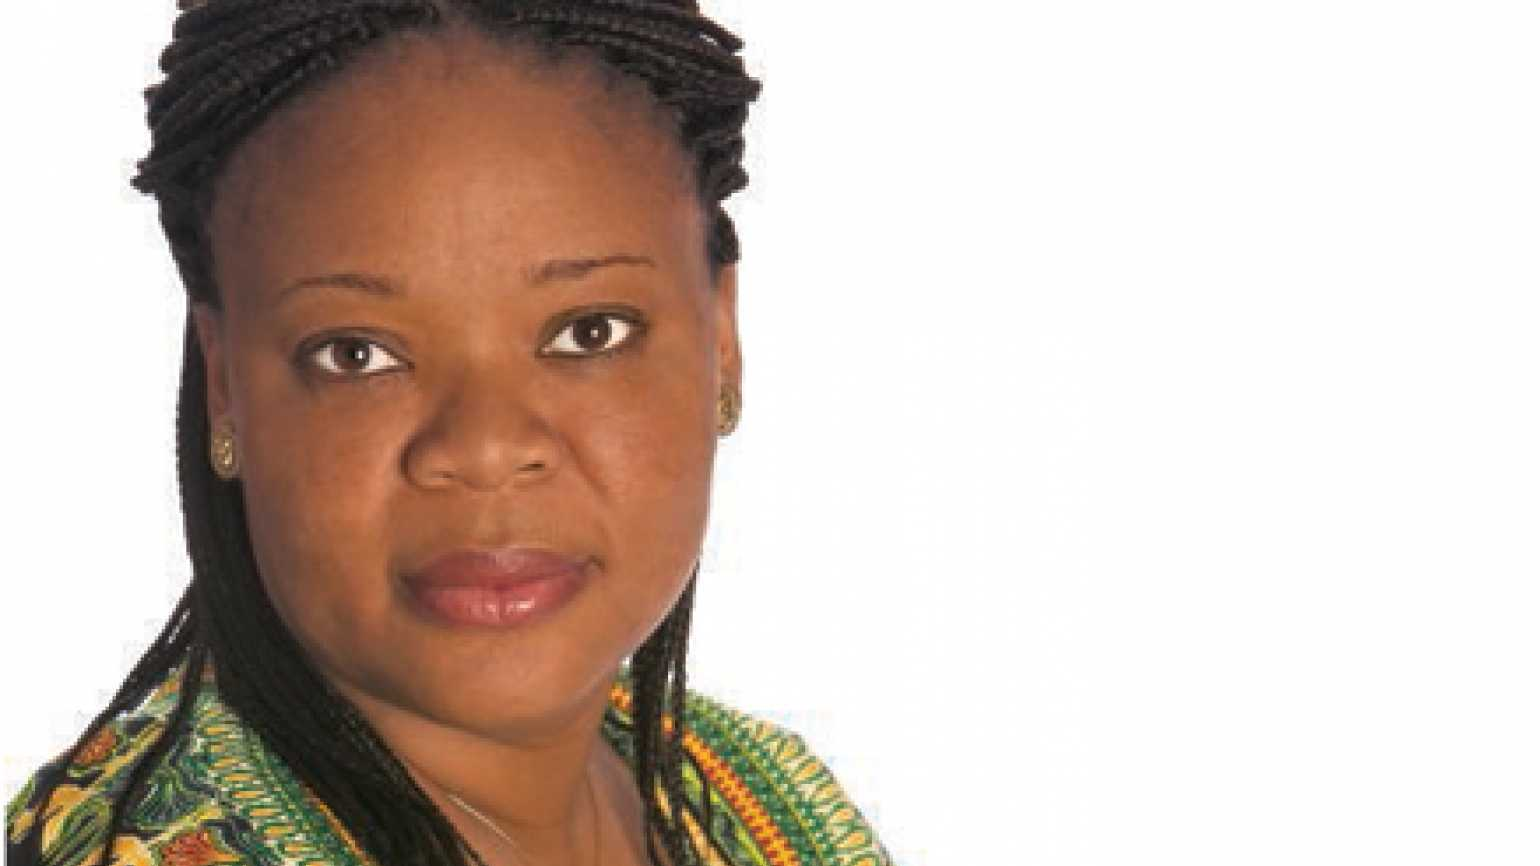 Leymah Gbowee regained her faith in achieving Liberian peace